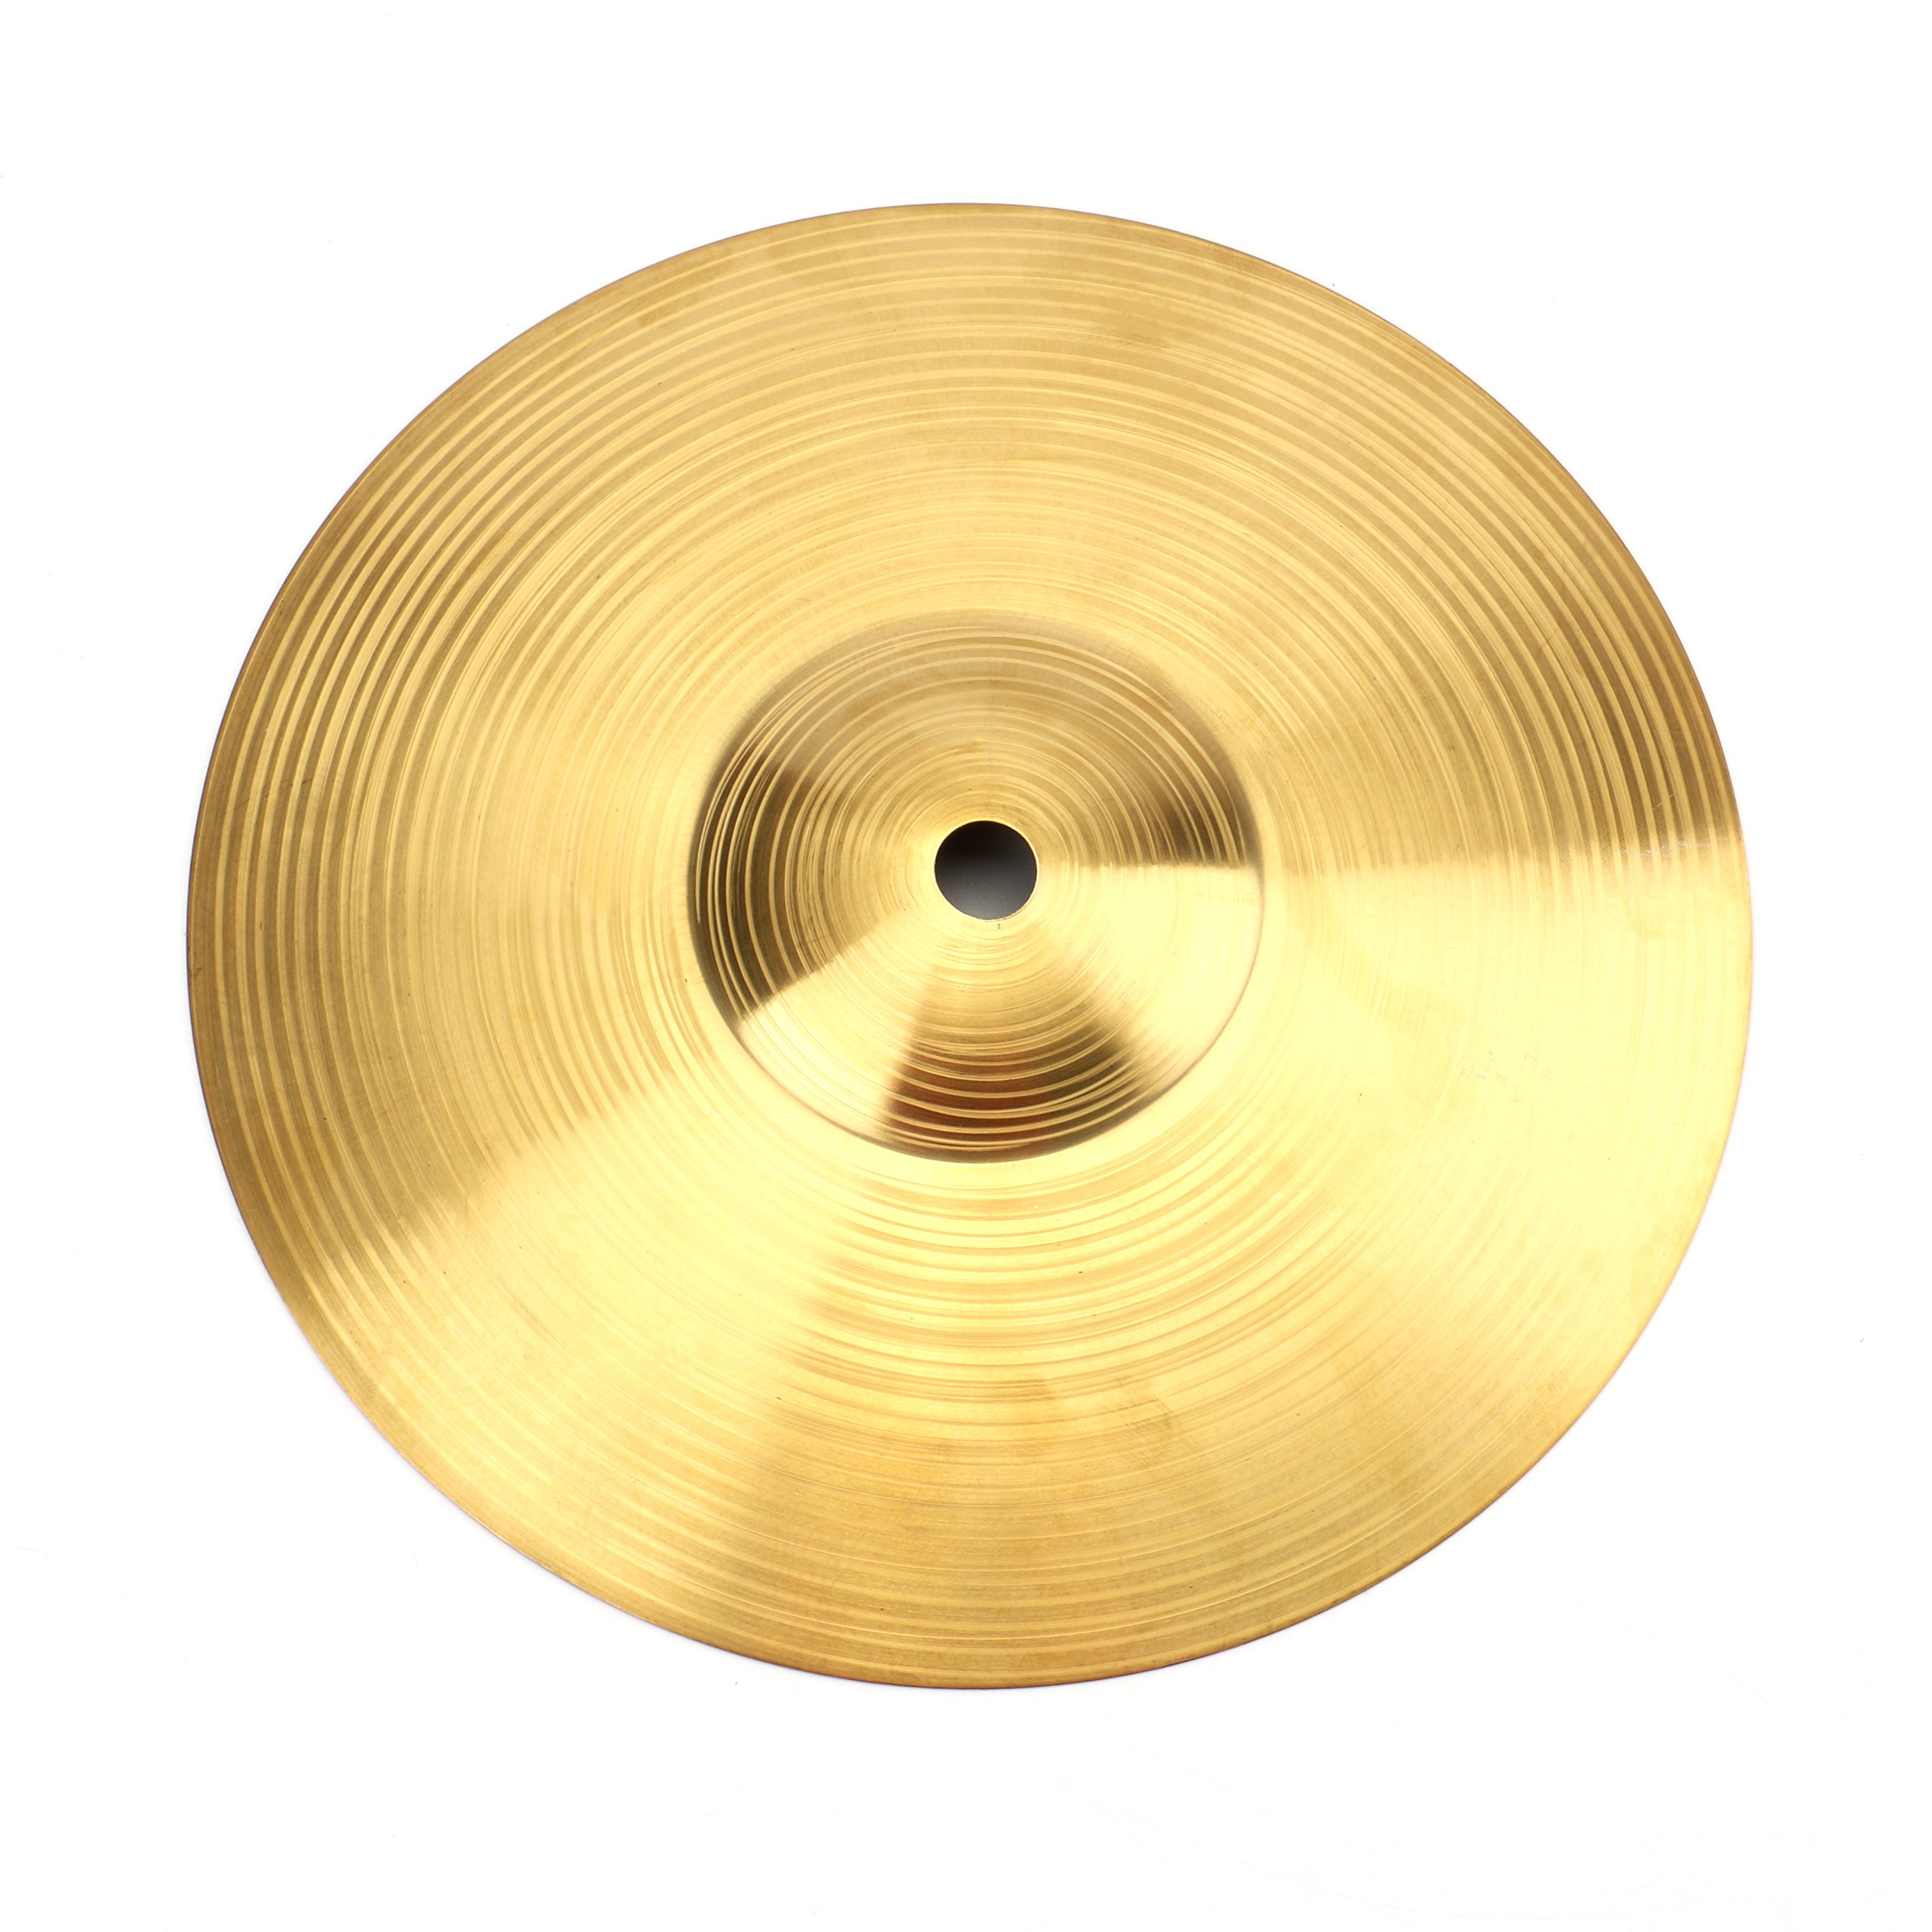 Foraineam 14-Inch Crash Cymbal by Foraineam